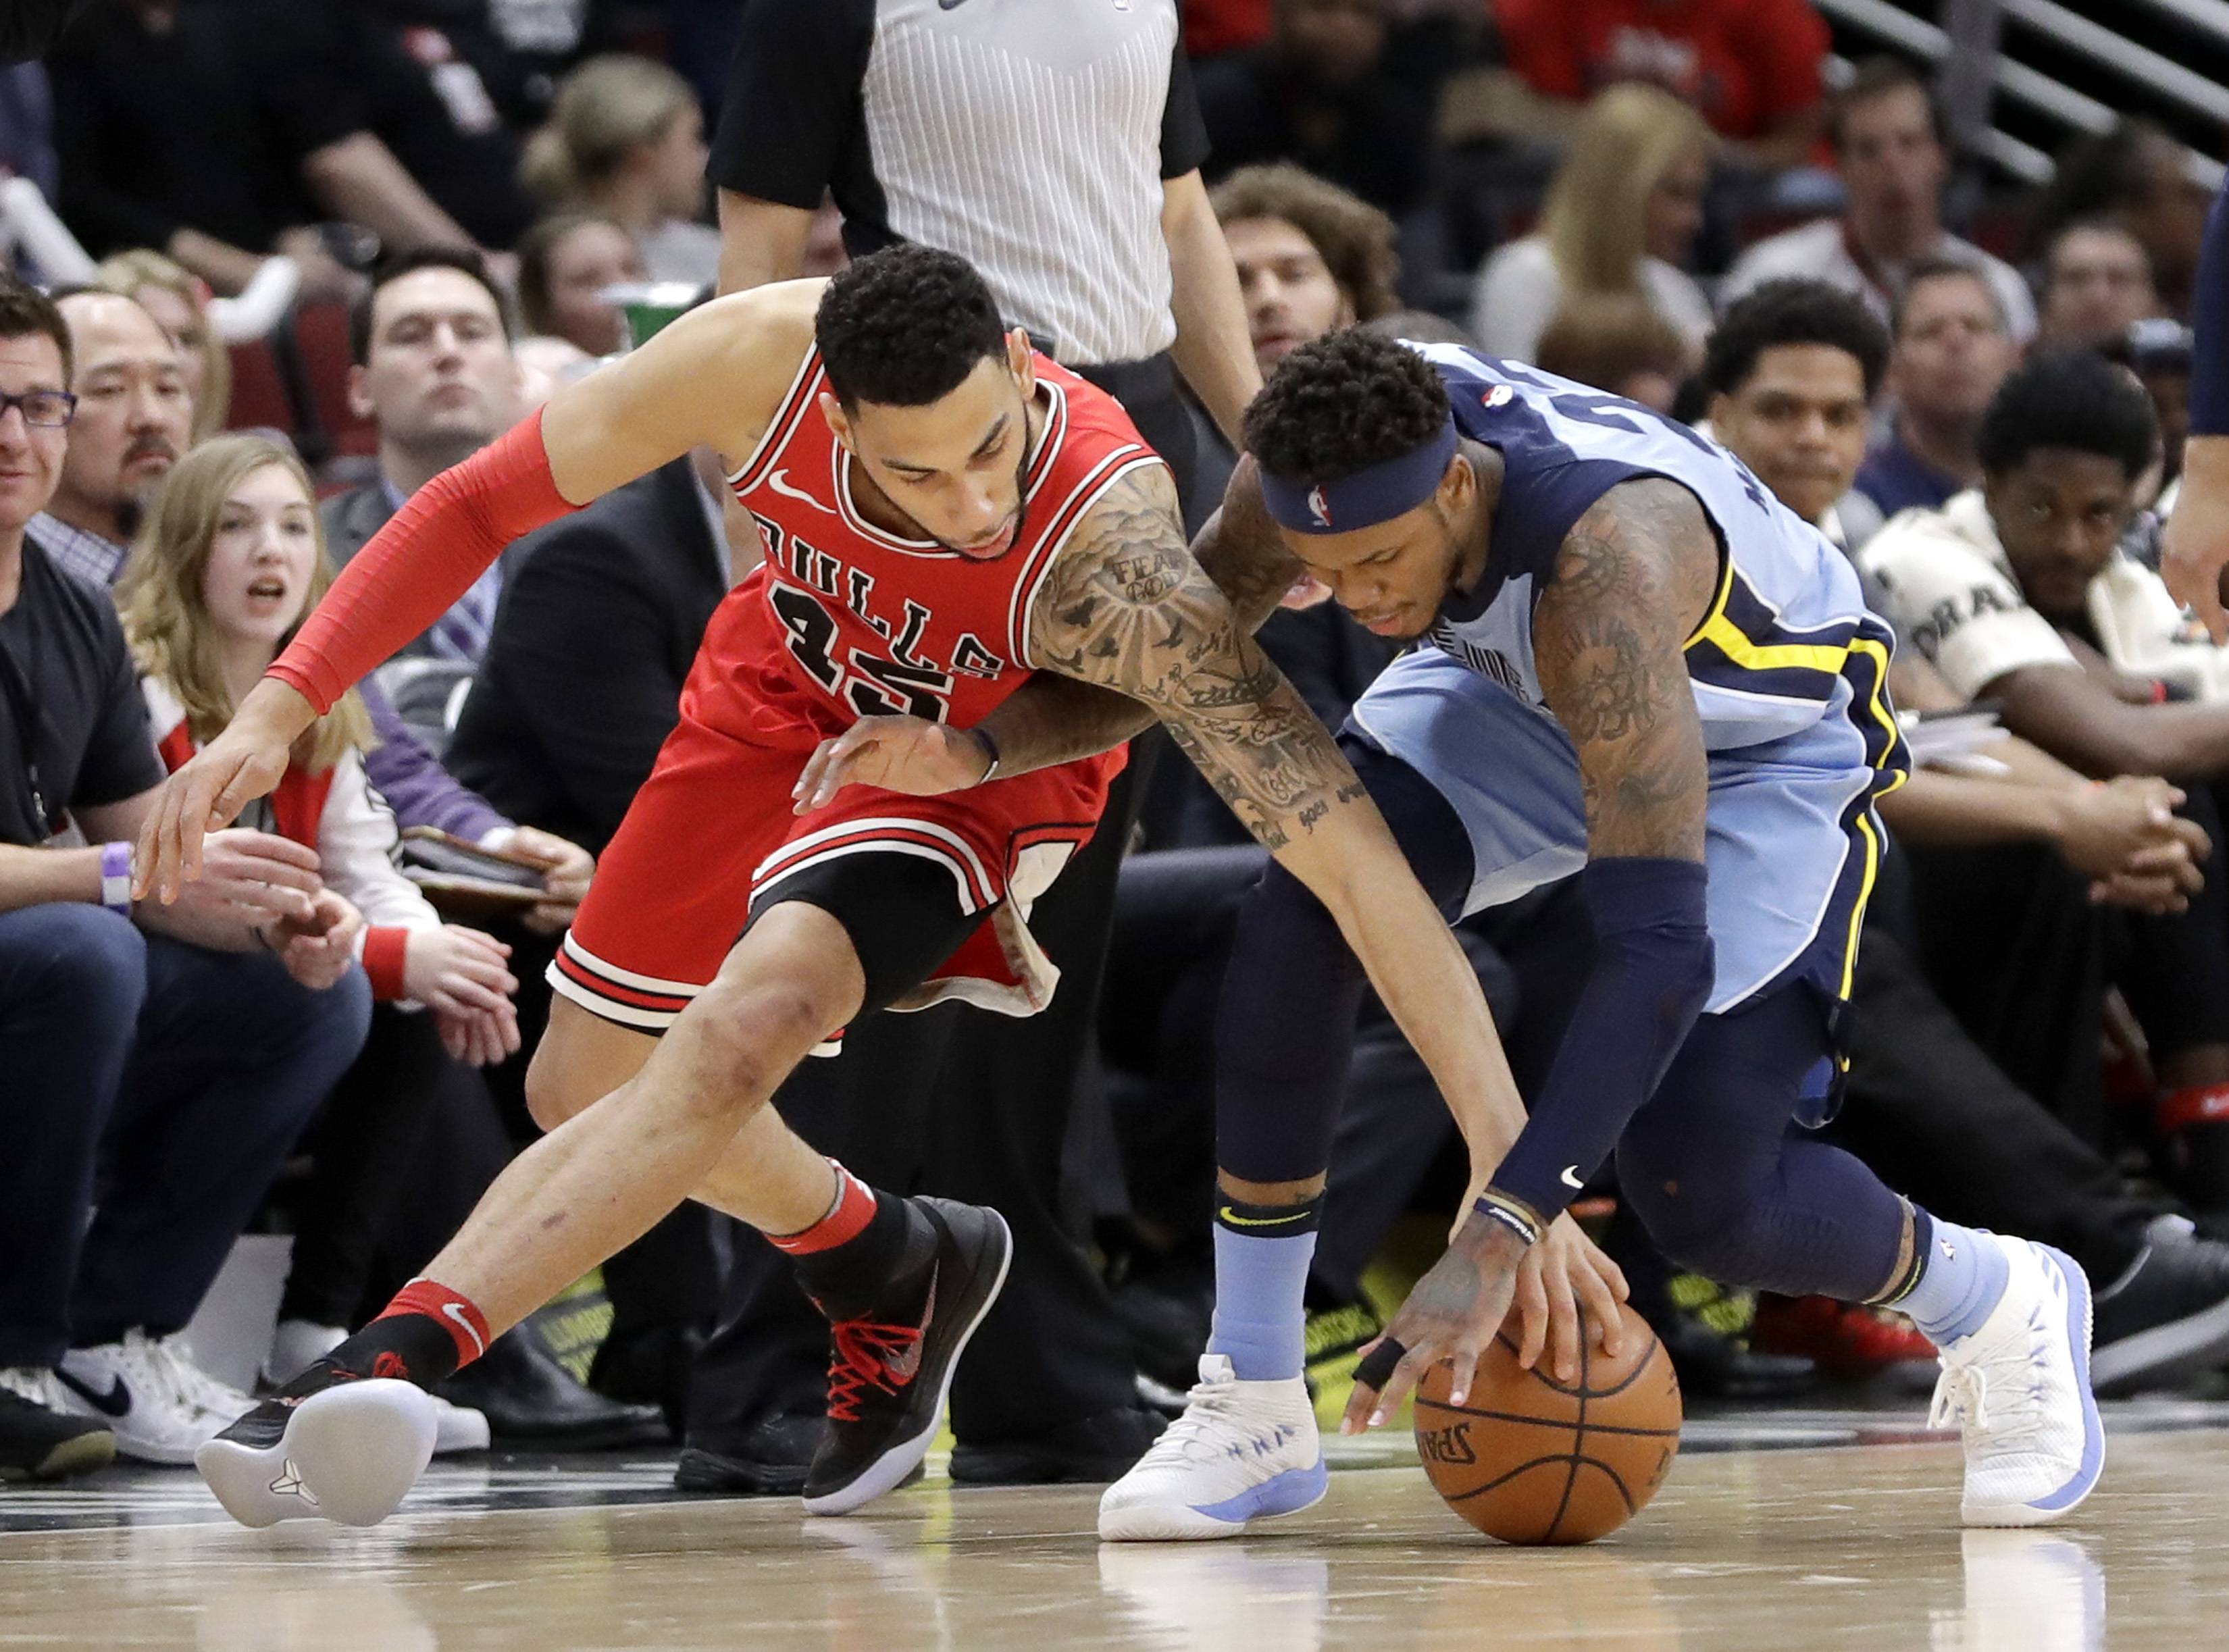 Chicago Bulls' Denzel Valentine, left, and Memphis Grizzlies' Ben McLemore, right, battle for a loose ball during the second half of an NBA basketball game Wednesday, March 7, 2018, in Chicago. The Bulls won 119-110.